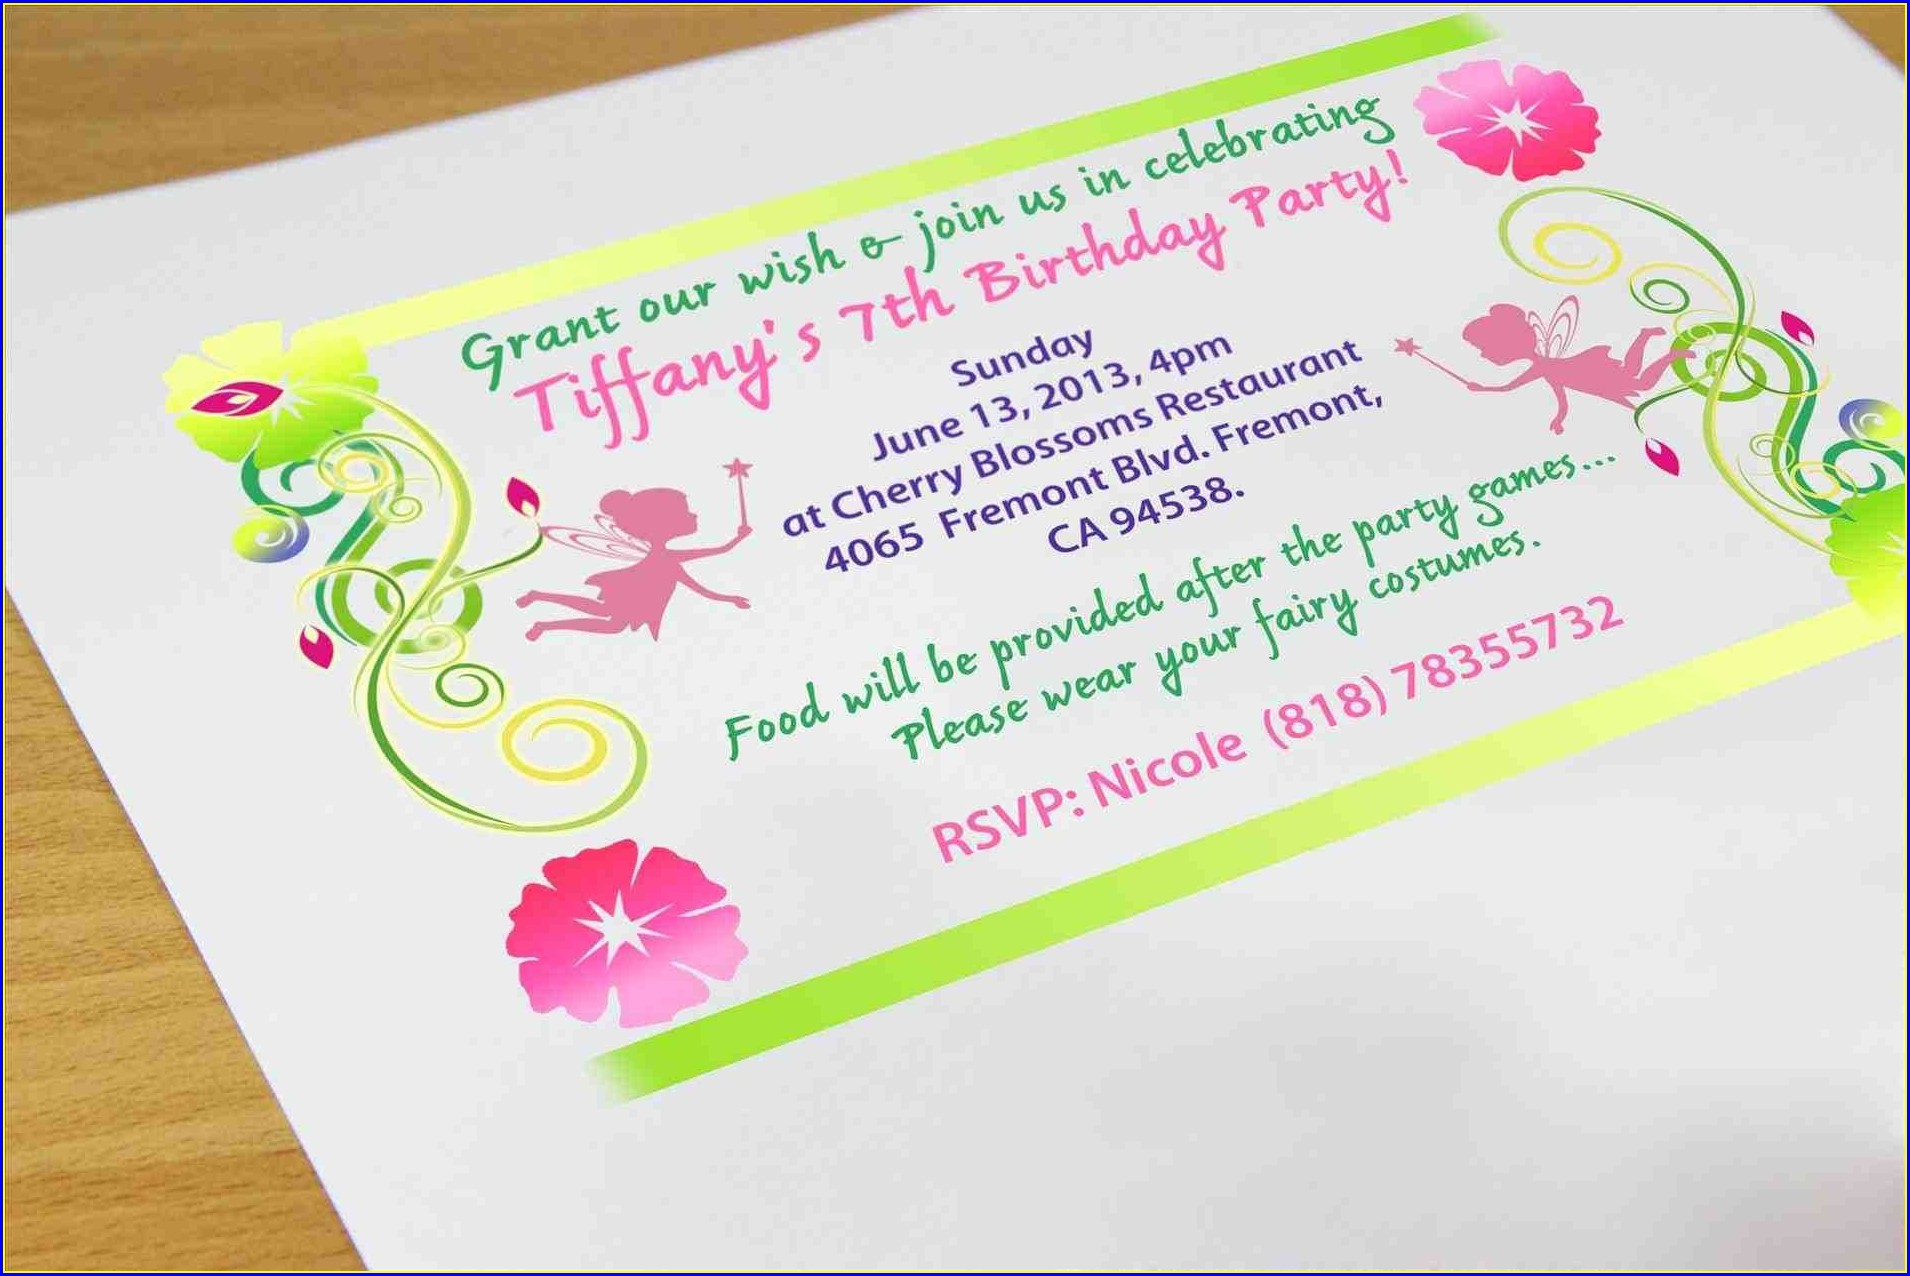 7th Birthday Invitation Wording Ideas